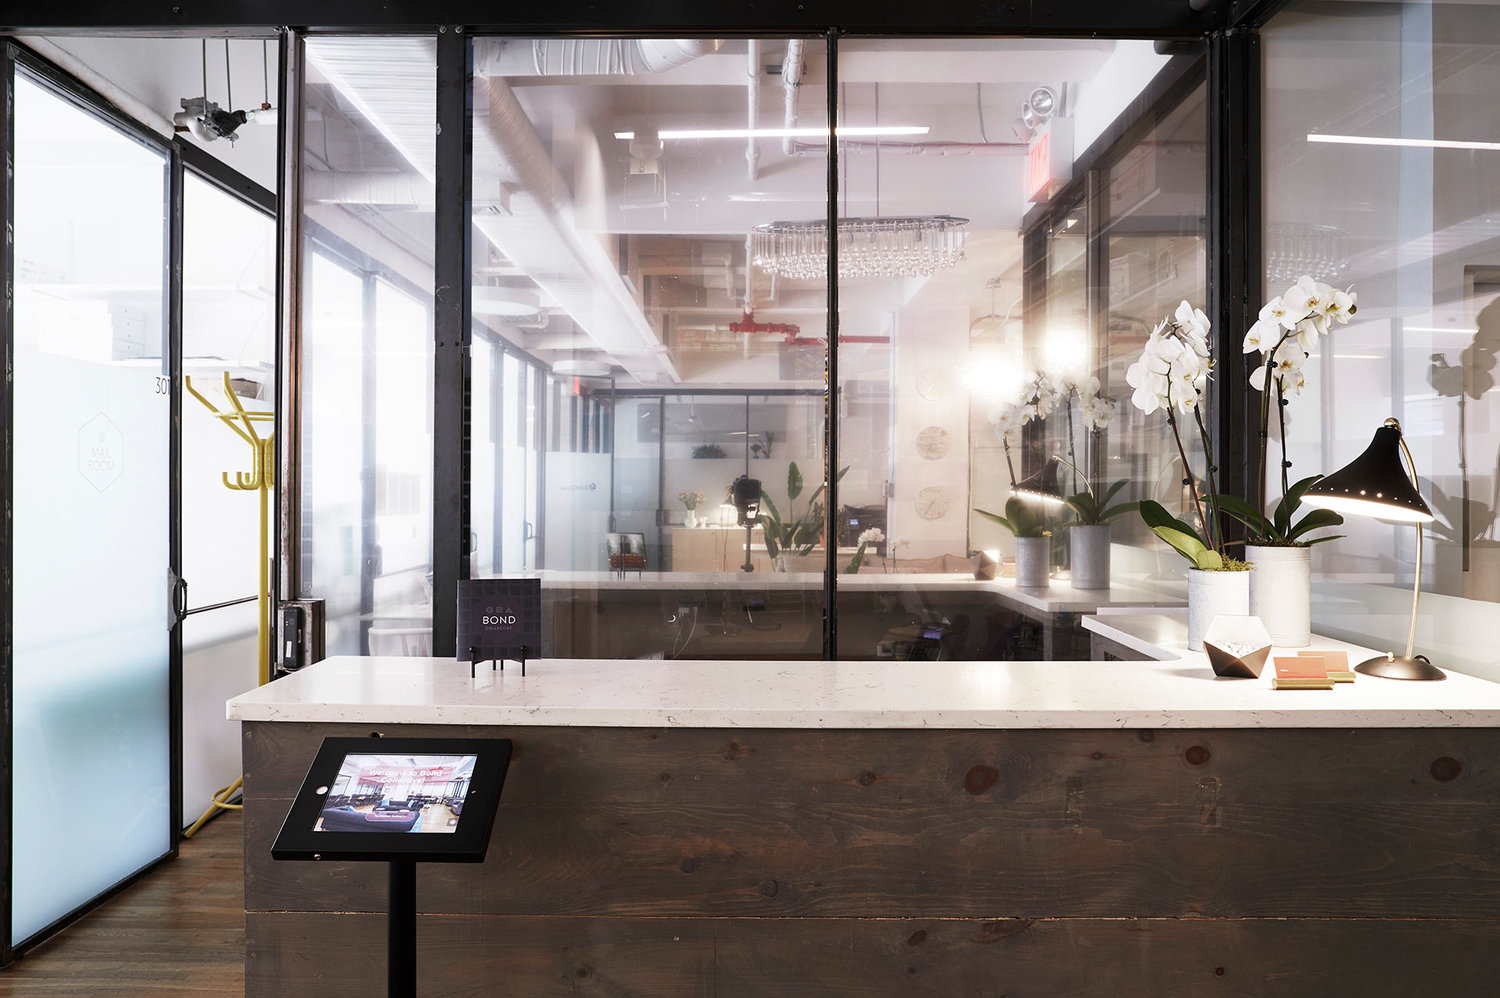 entry area of bond collective shared coworking and open office plan spaces